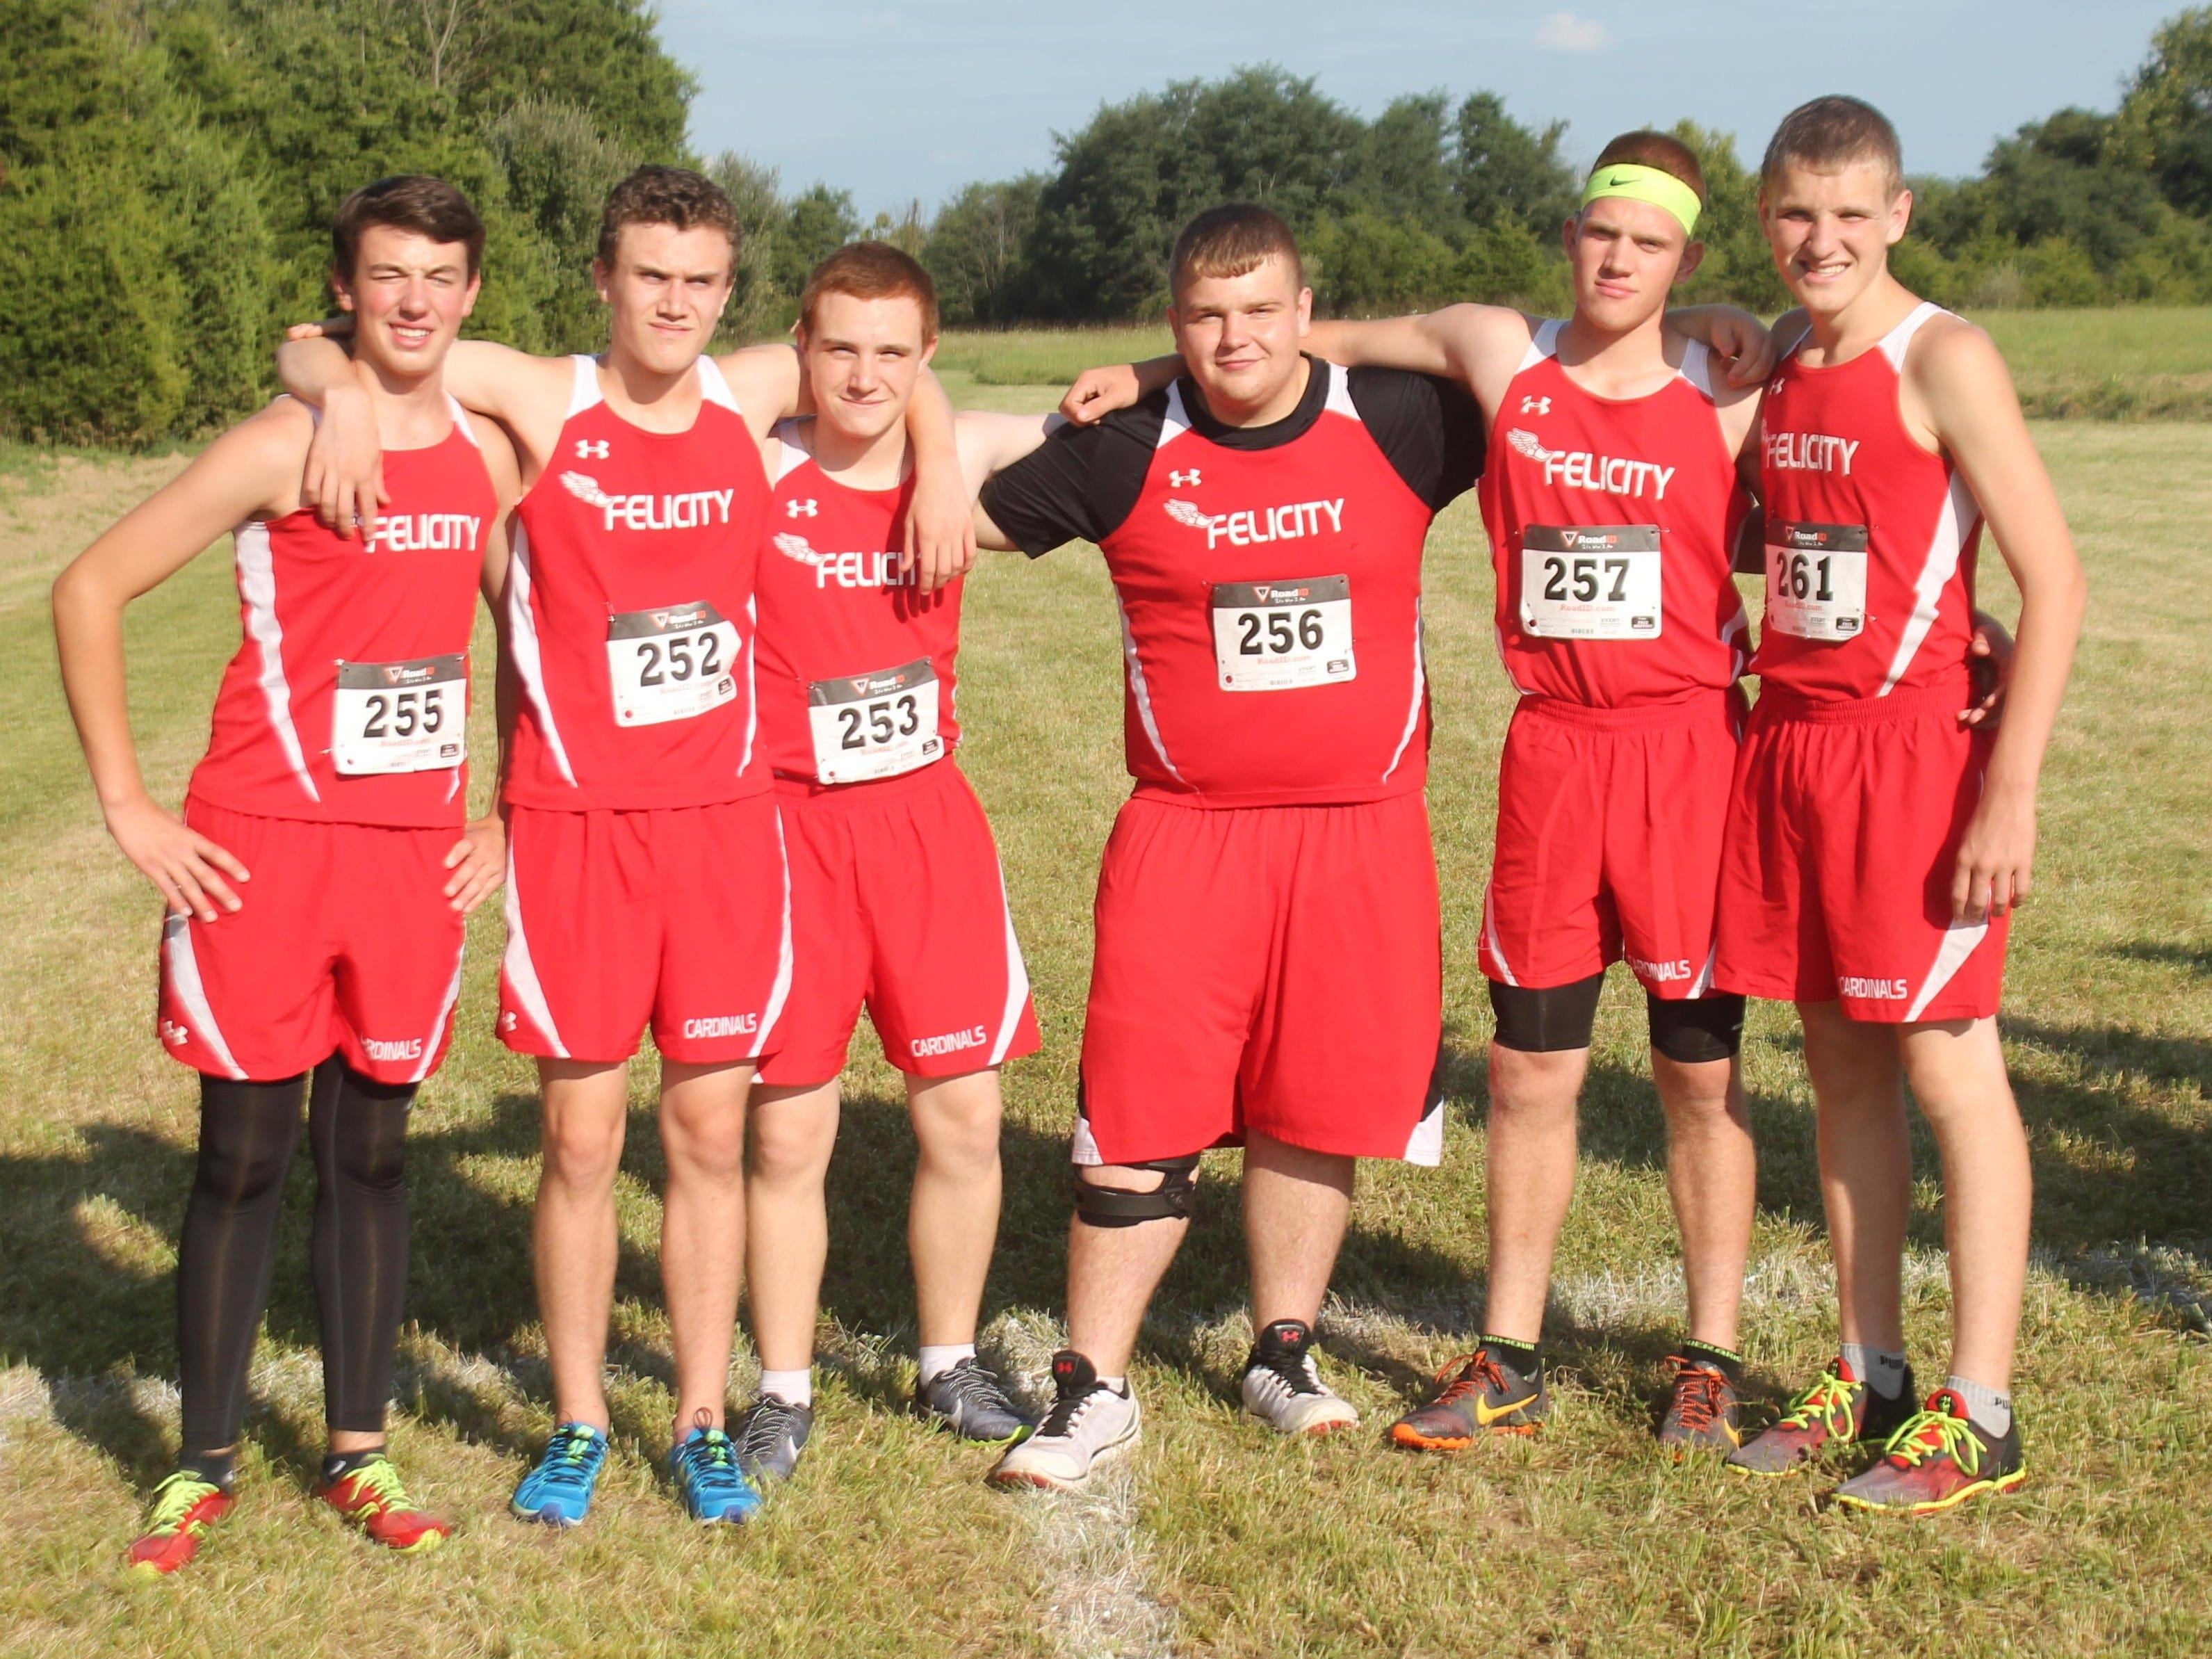 Felicity-Franklin had to race without top runner Jared Boeckmann Aug. 26. Carrying on for the Cardinals were, from left, junior Ethan Brown, freshman Aidan Binion, junior Ethan Binion, junior Nathaniel Buckler, junior Bradley Elkins and freshman Austin Rutherford.